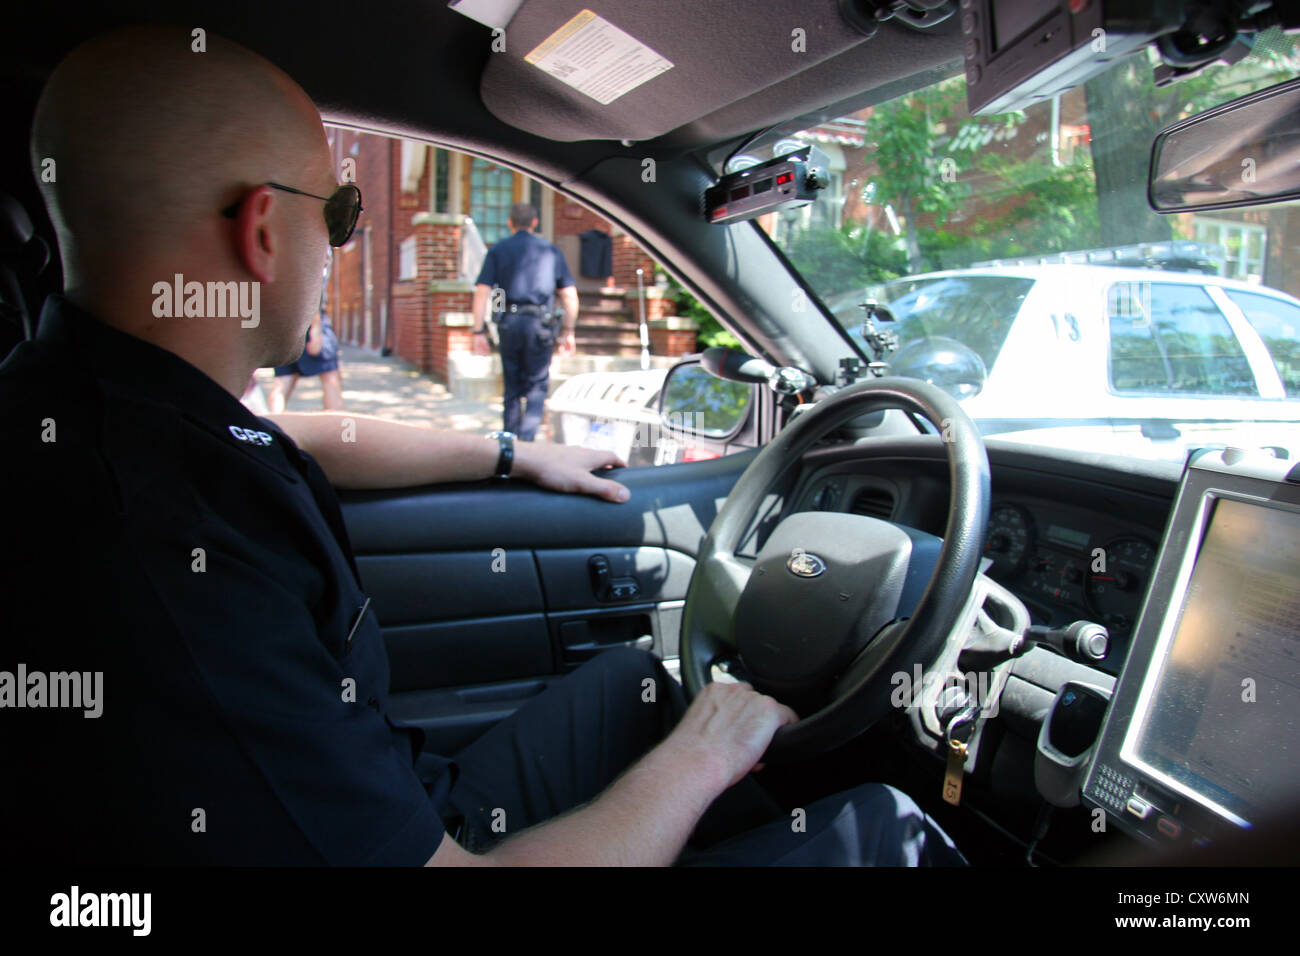 Cops in Grosse Pointe Park respond to a call, Michigan, USA - Stock Image